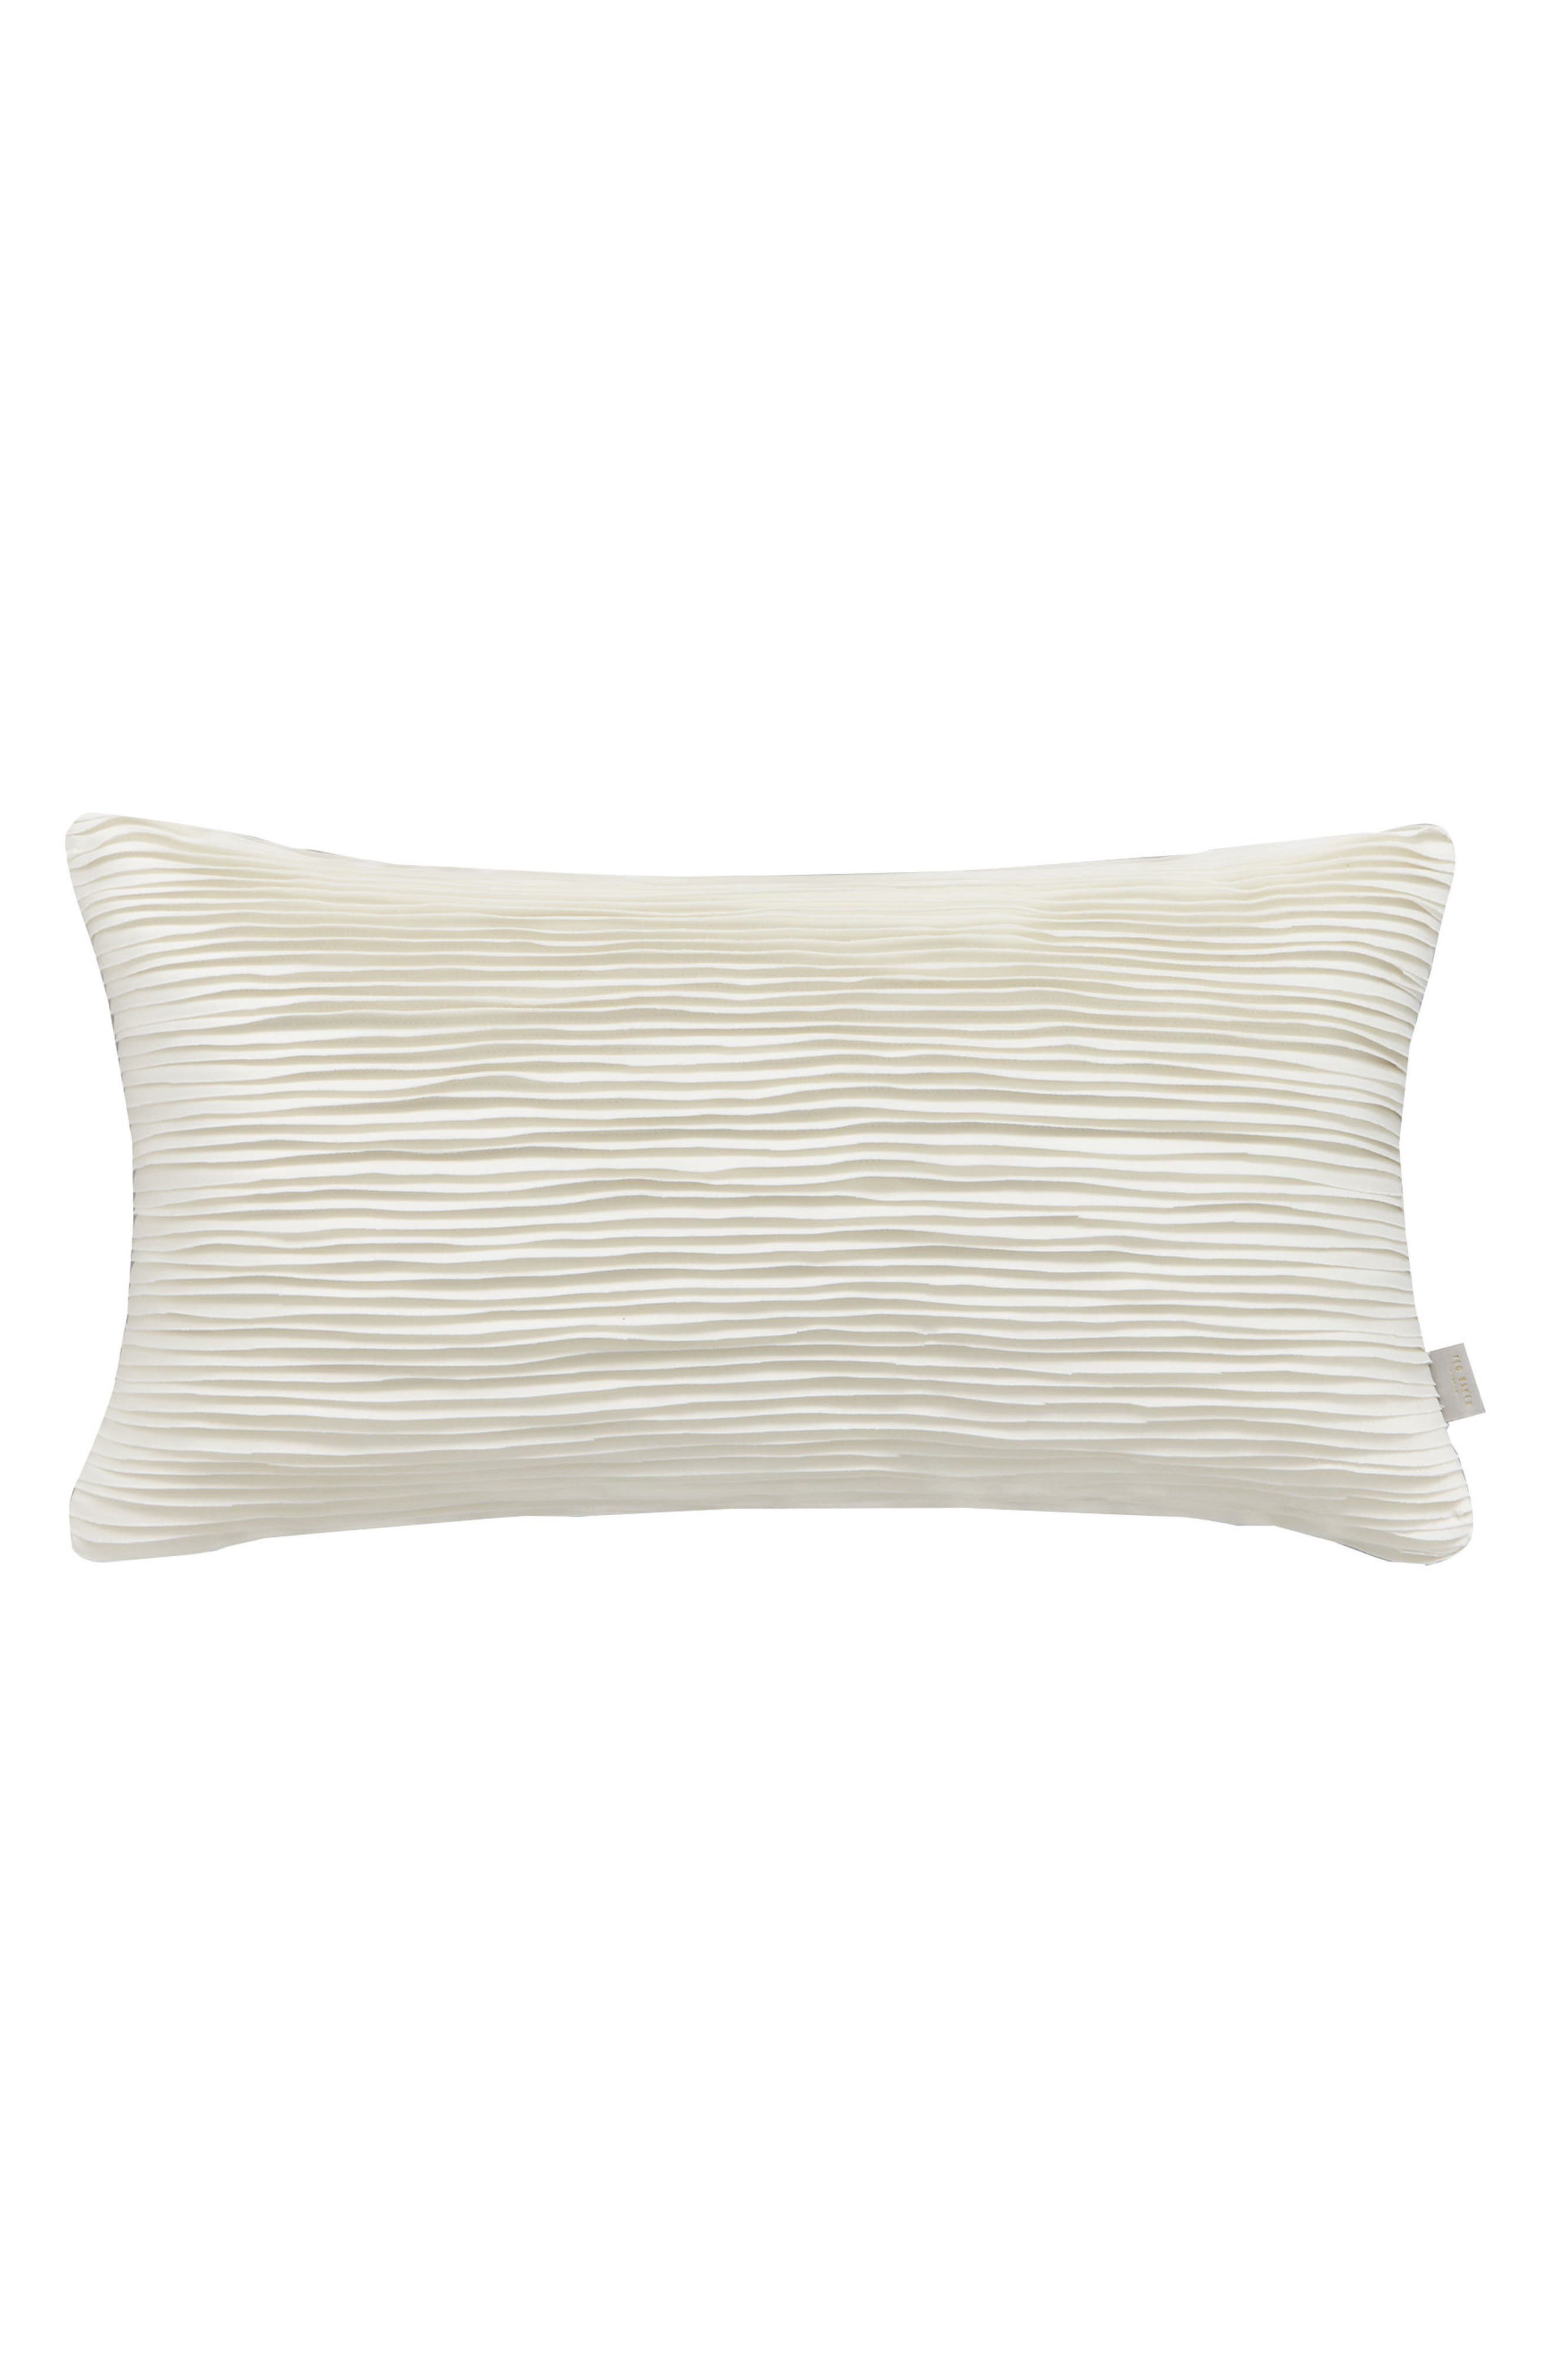 Frayed Accent Pillow,                             Main thumbnail 1, color,                             900